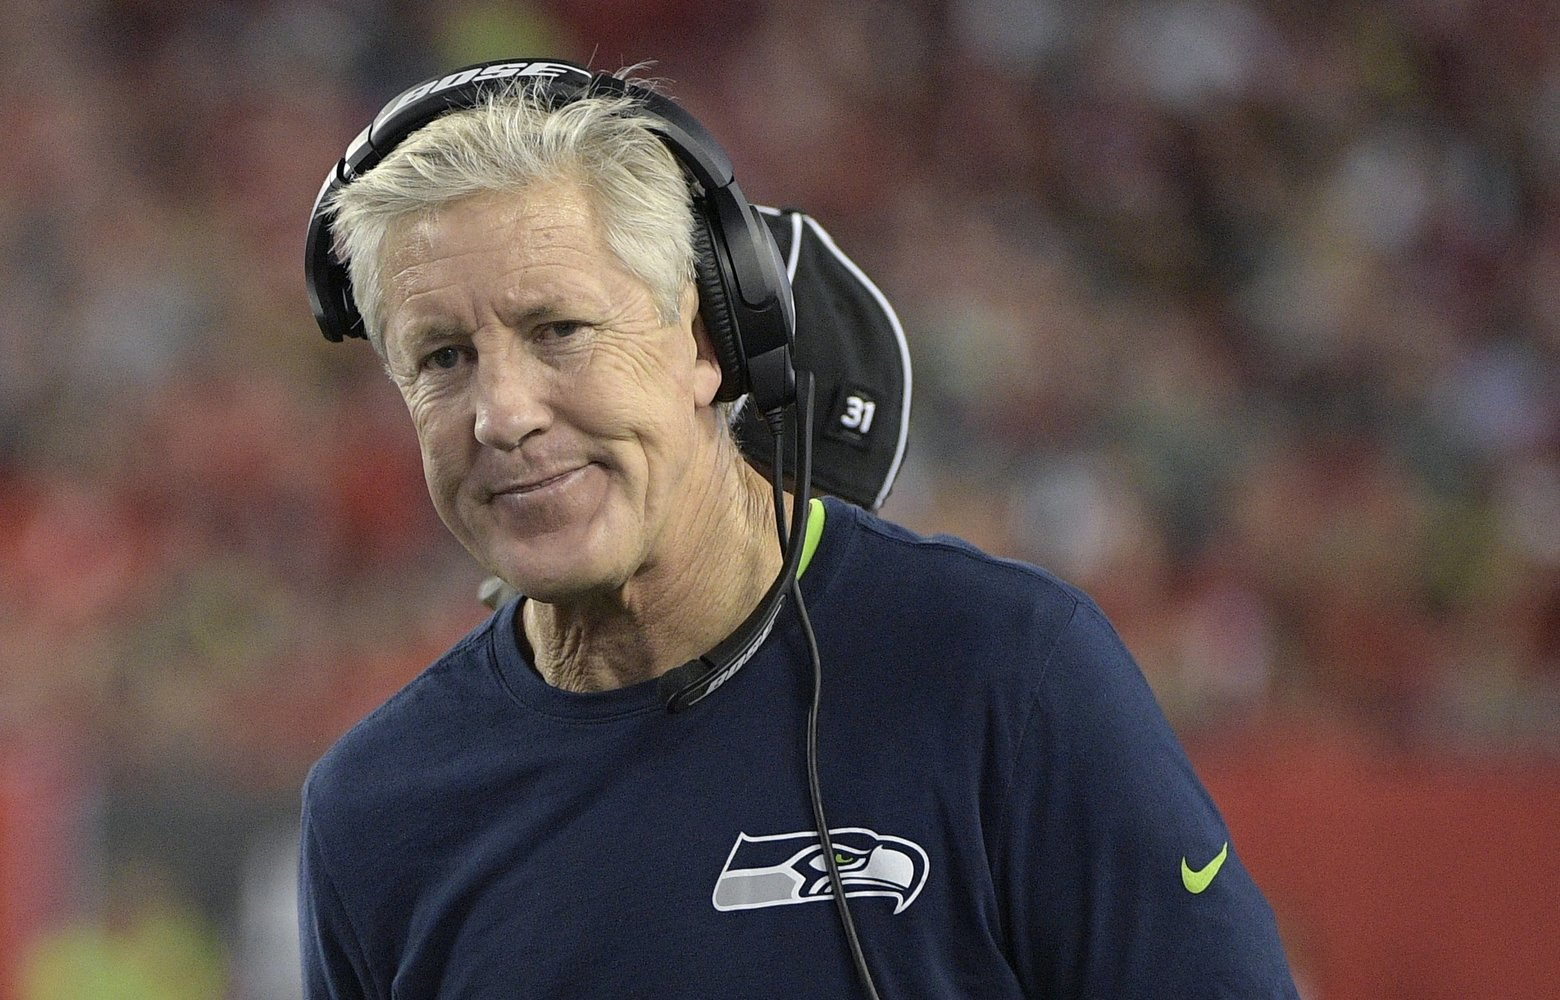 Seattle Seahawks head coach Pete Carroll, right, argues a call with umpire Tony Michalek (115) during the second half of an NFL football game against the Tampa Bay Buccaneers in Tampa, Fla., Sunday, Nov. (115) during the second half of an NFL football game against the Tampa Bay Buccaneers in Tampa, Fla., Sunday, Nov. 27, 2016. The Buccaneers won 14-5. (AP Photo/Phelan M. Ebenhack)